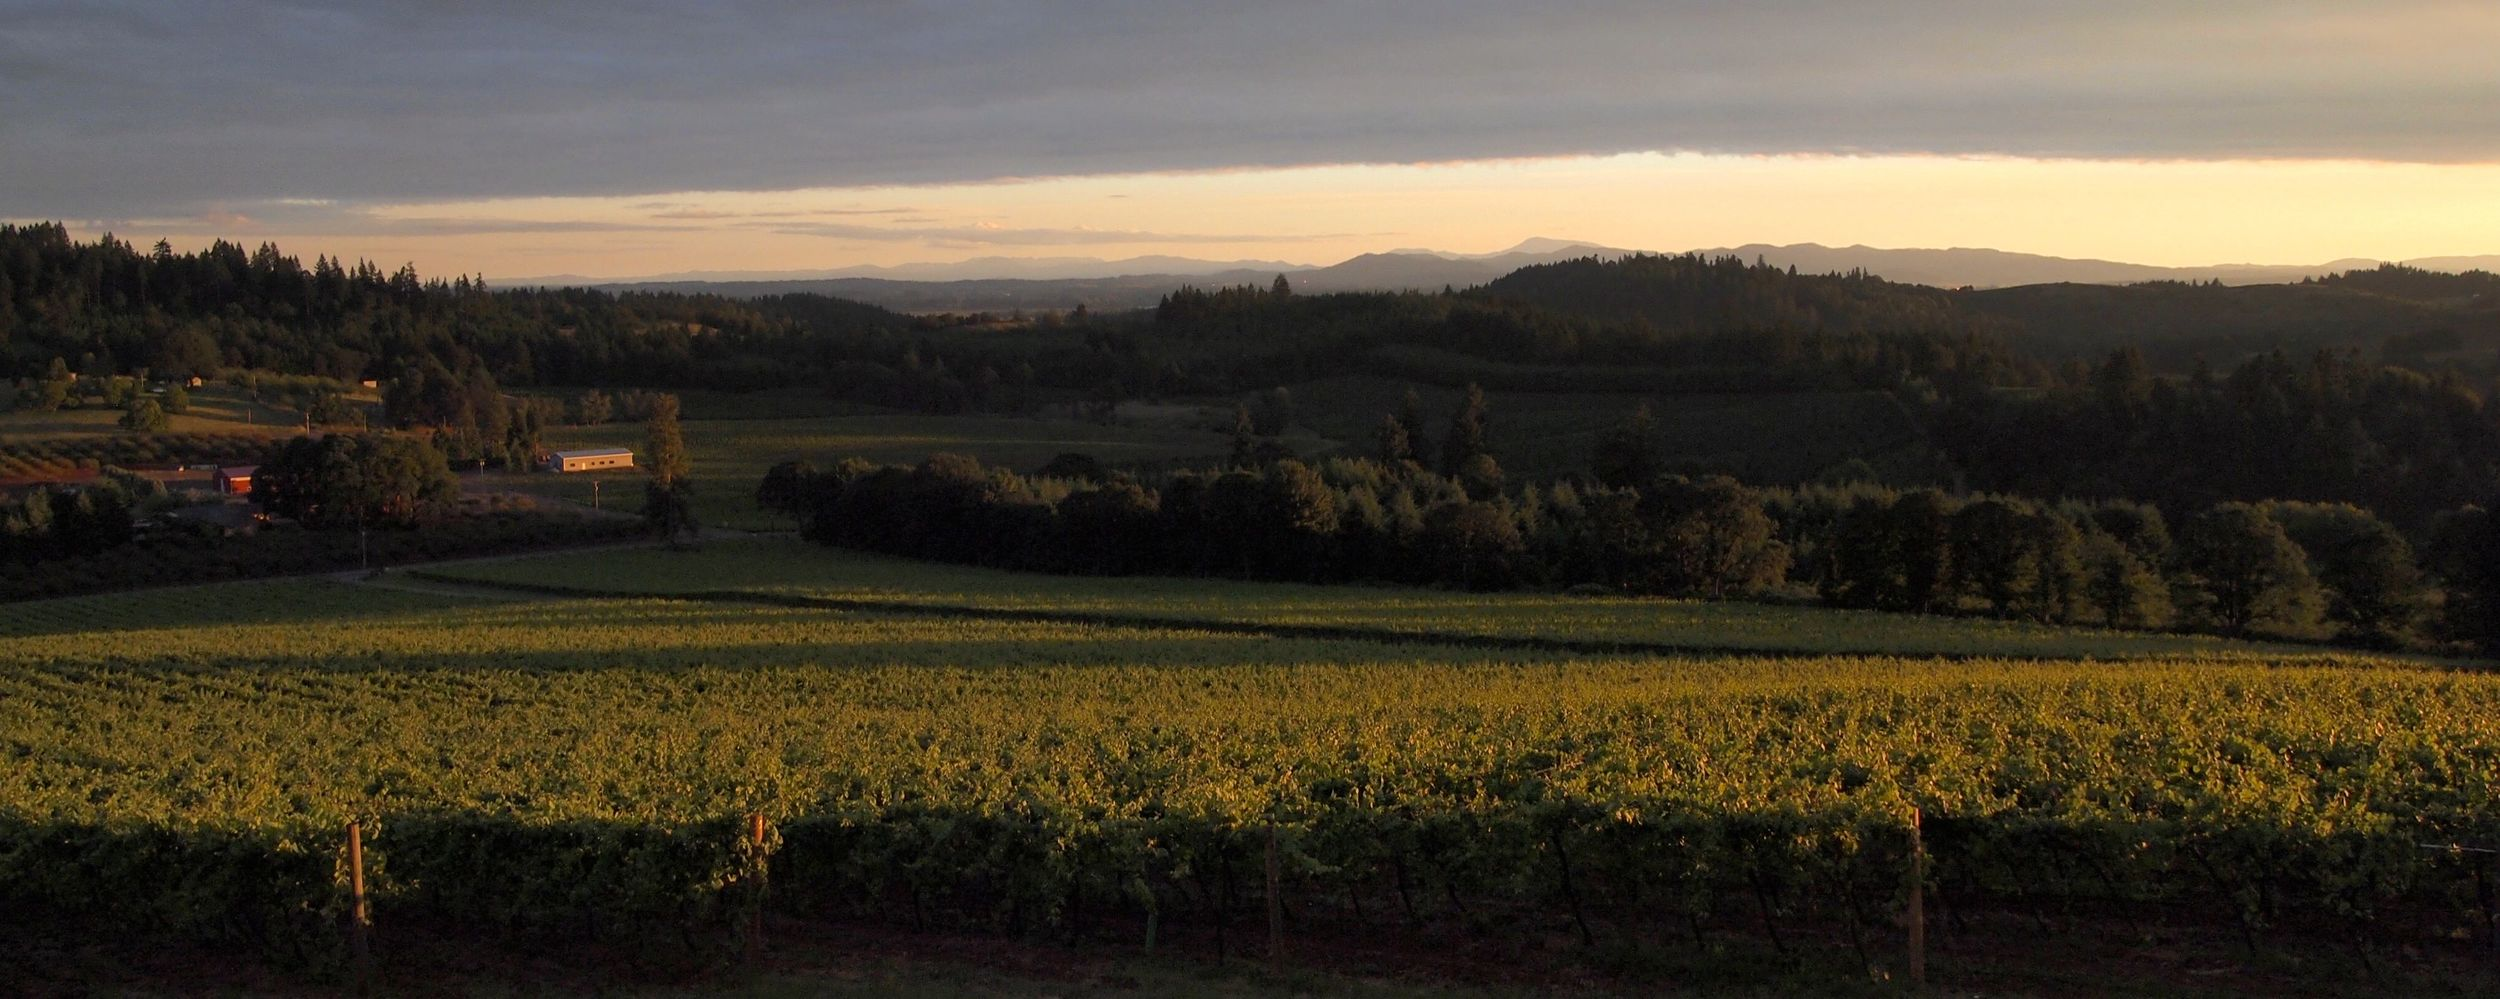 The view overlooking the coast range at Willamette Valley Vineayrds